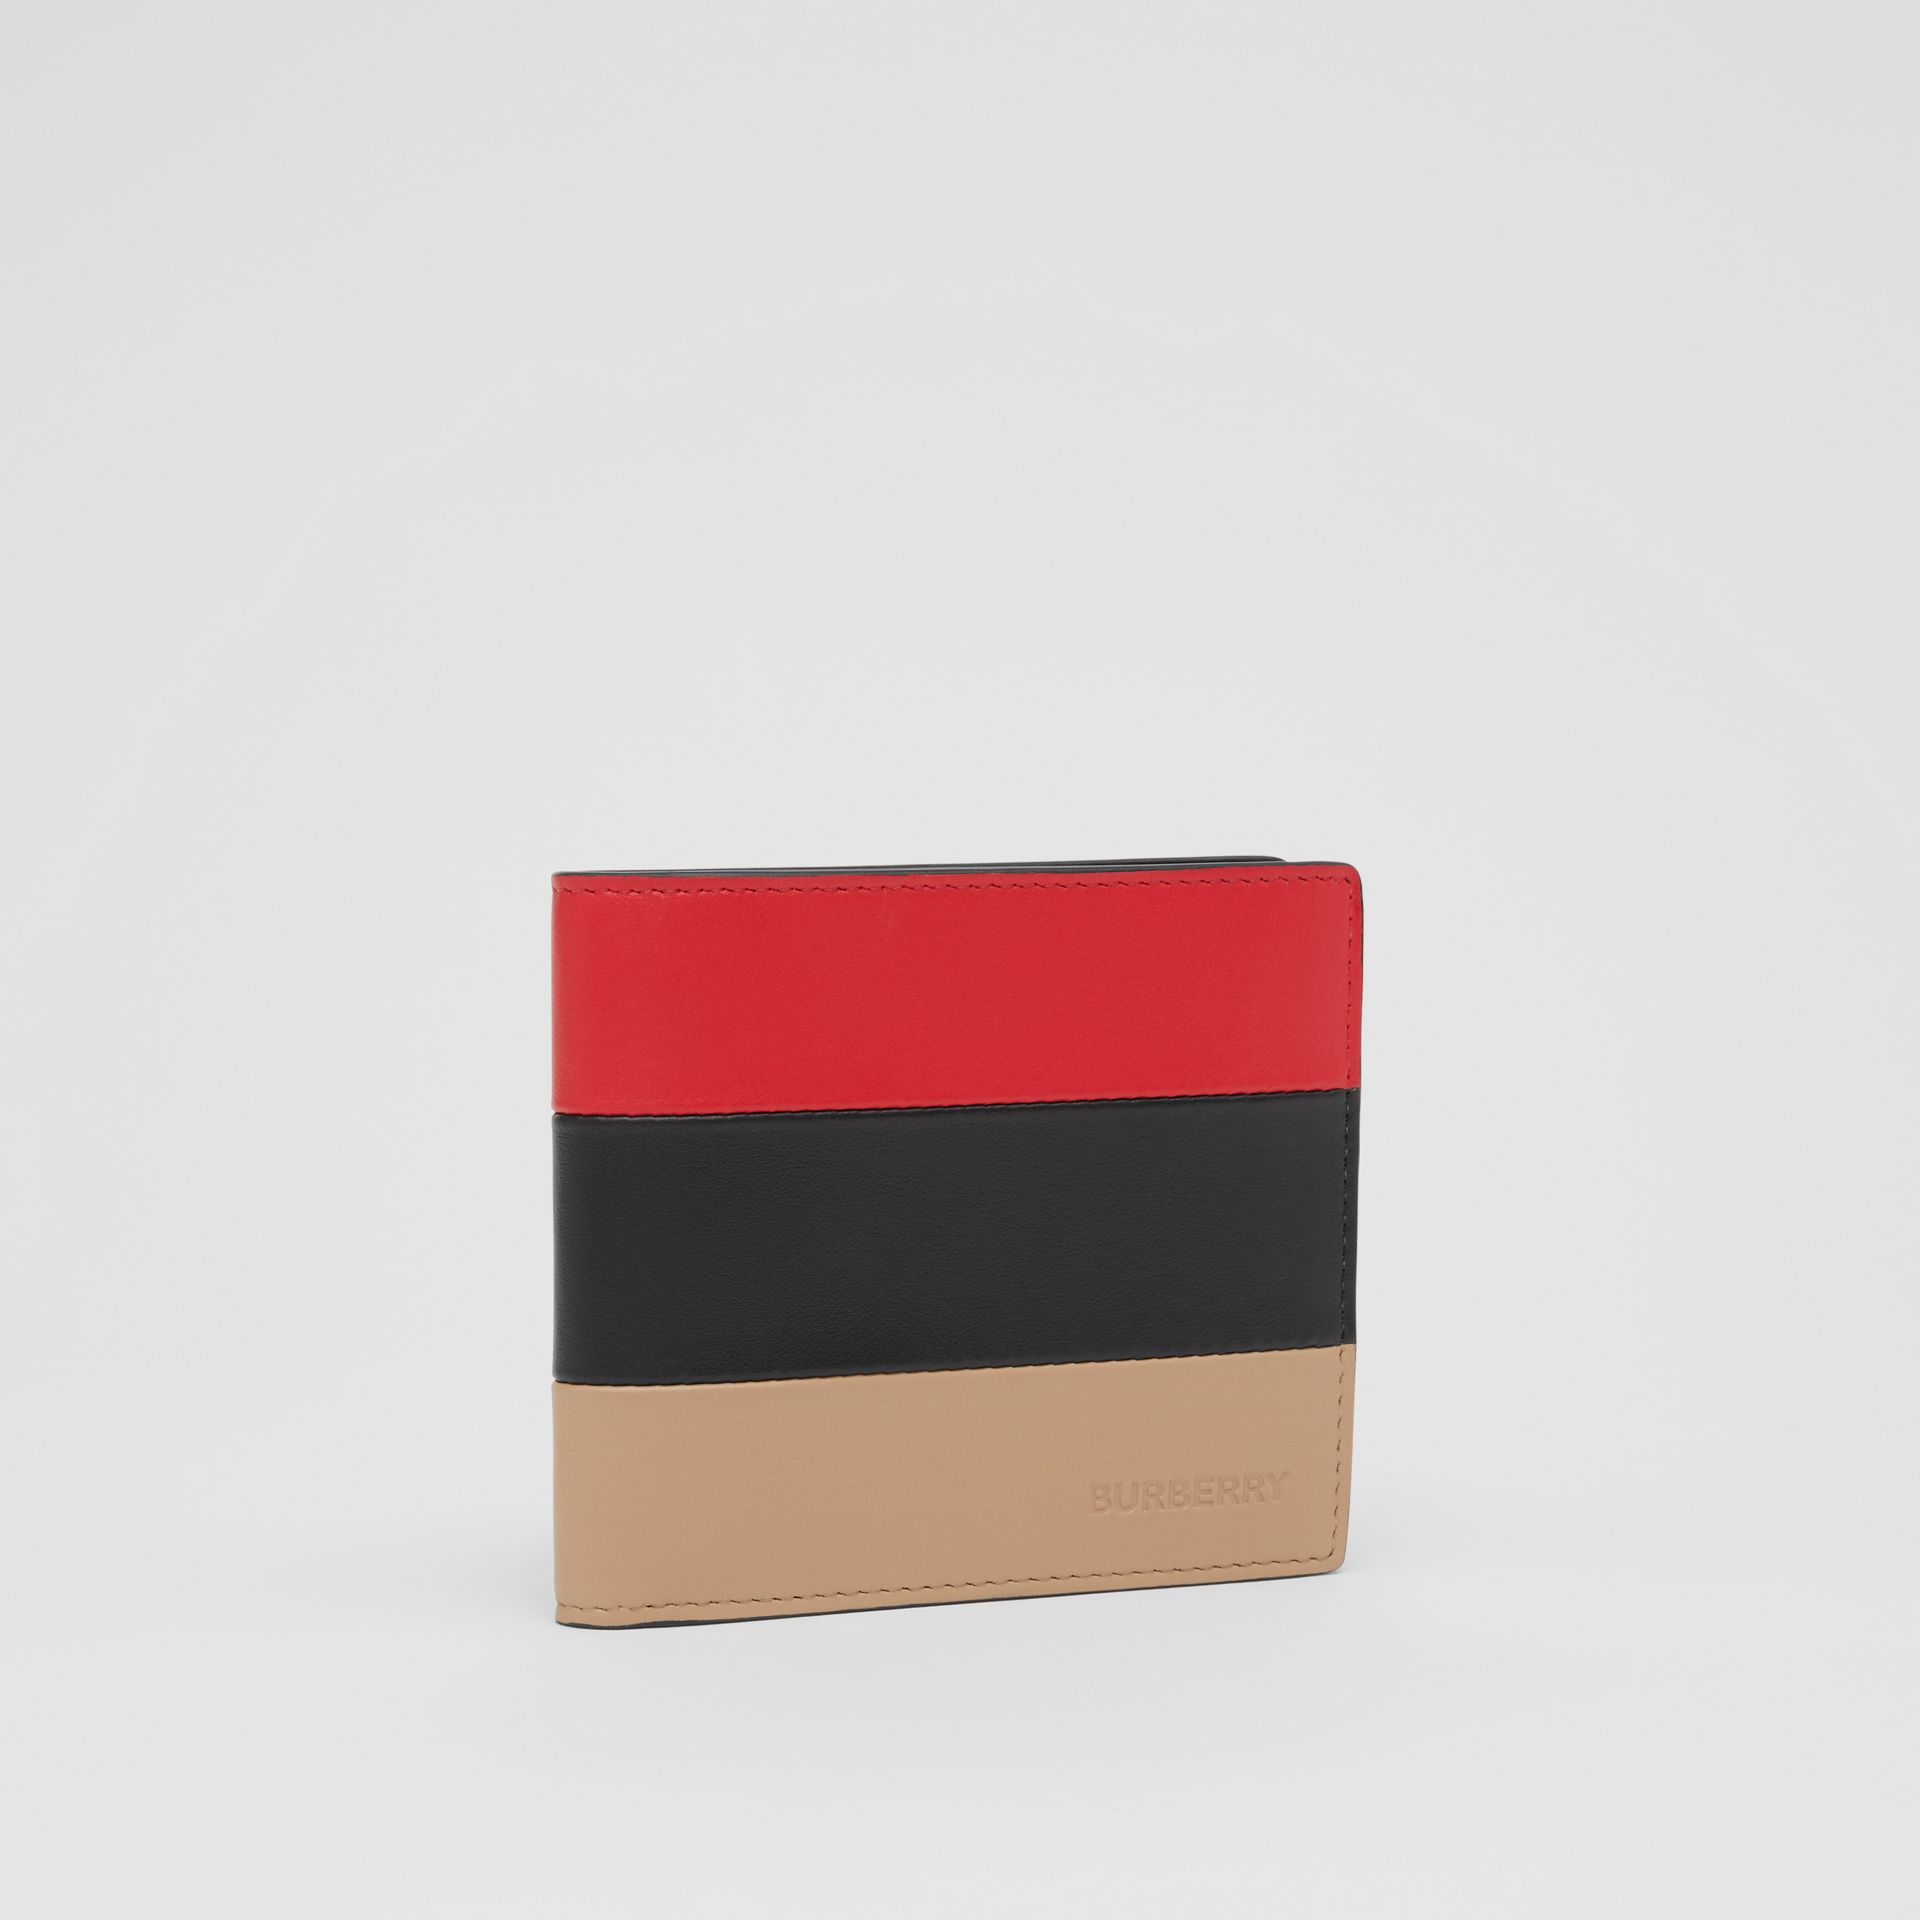 Colour Block Leather International Bifold Wallet in Red/black/beige - Men | Burberry - gallery image 3